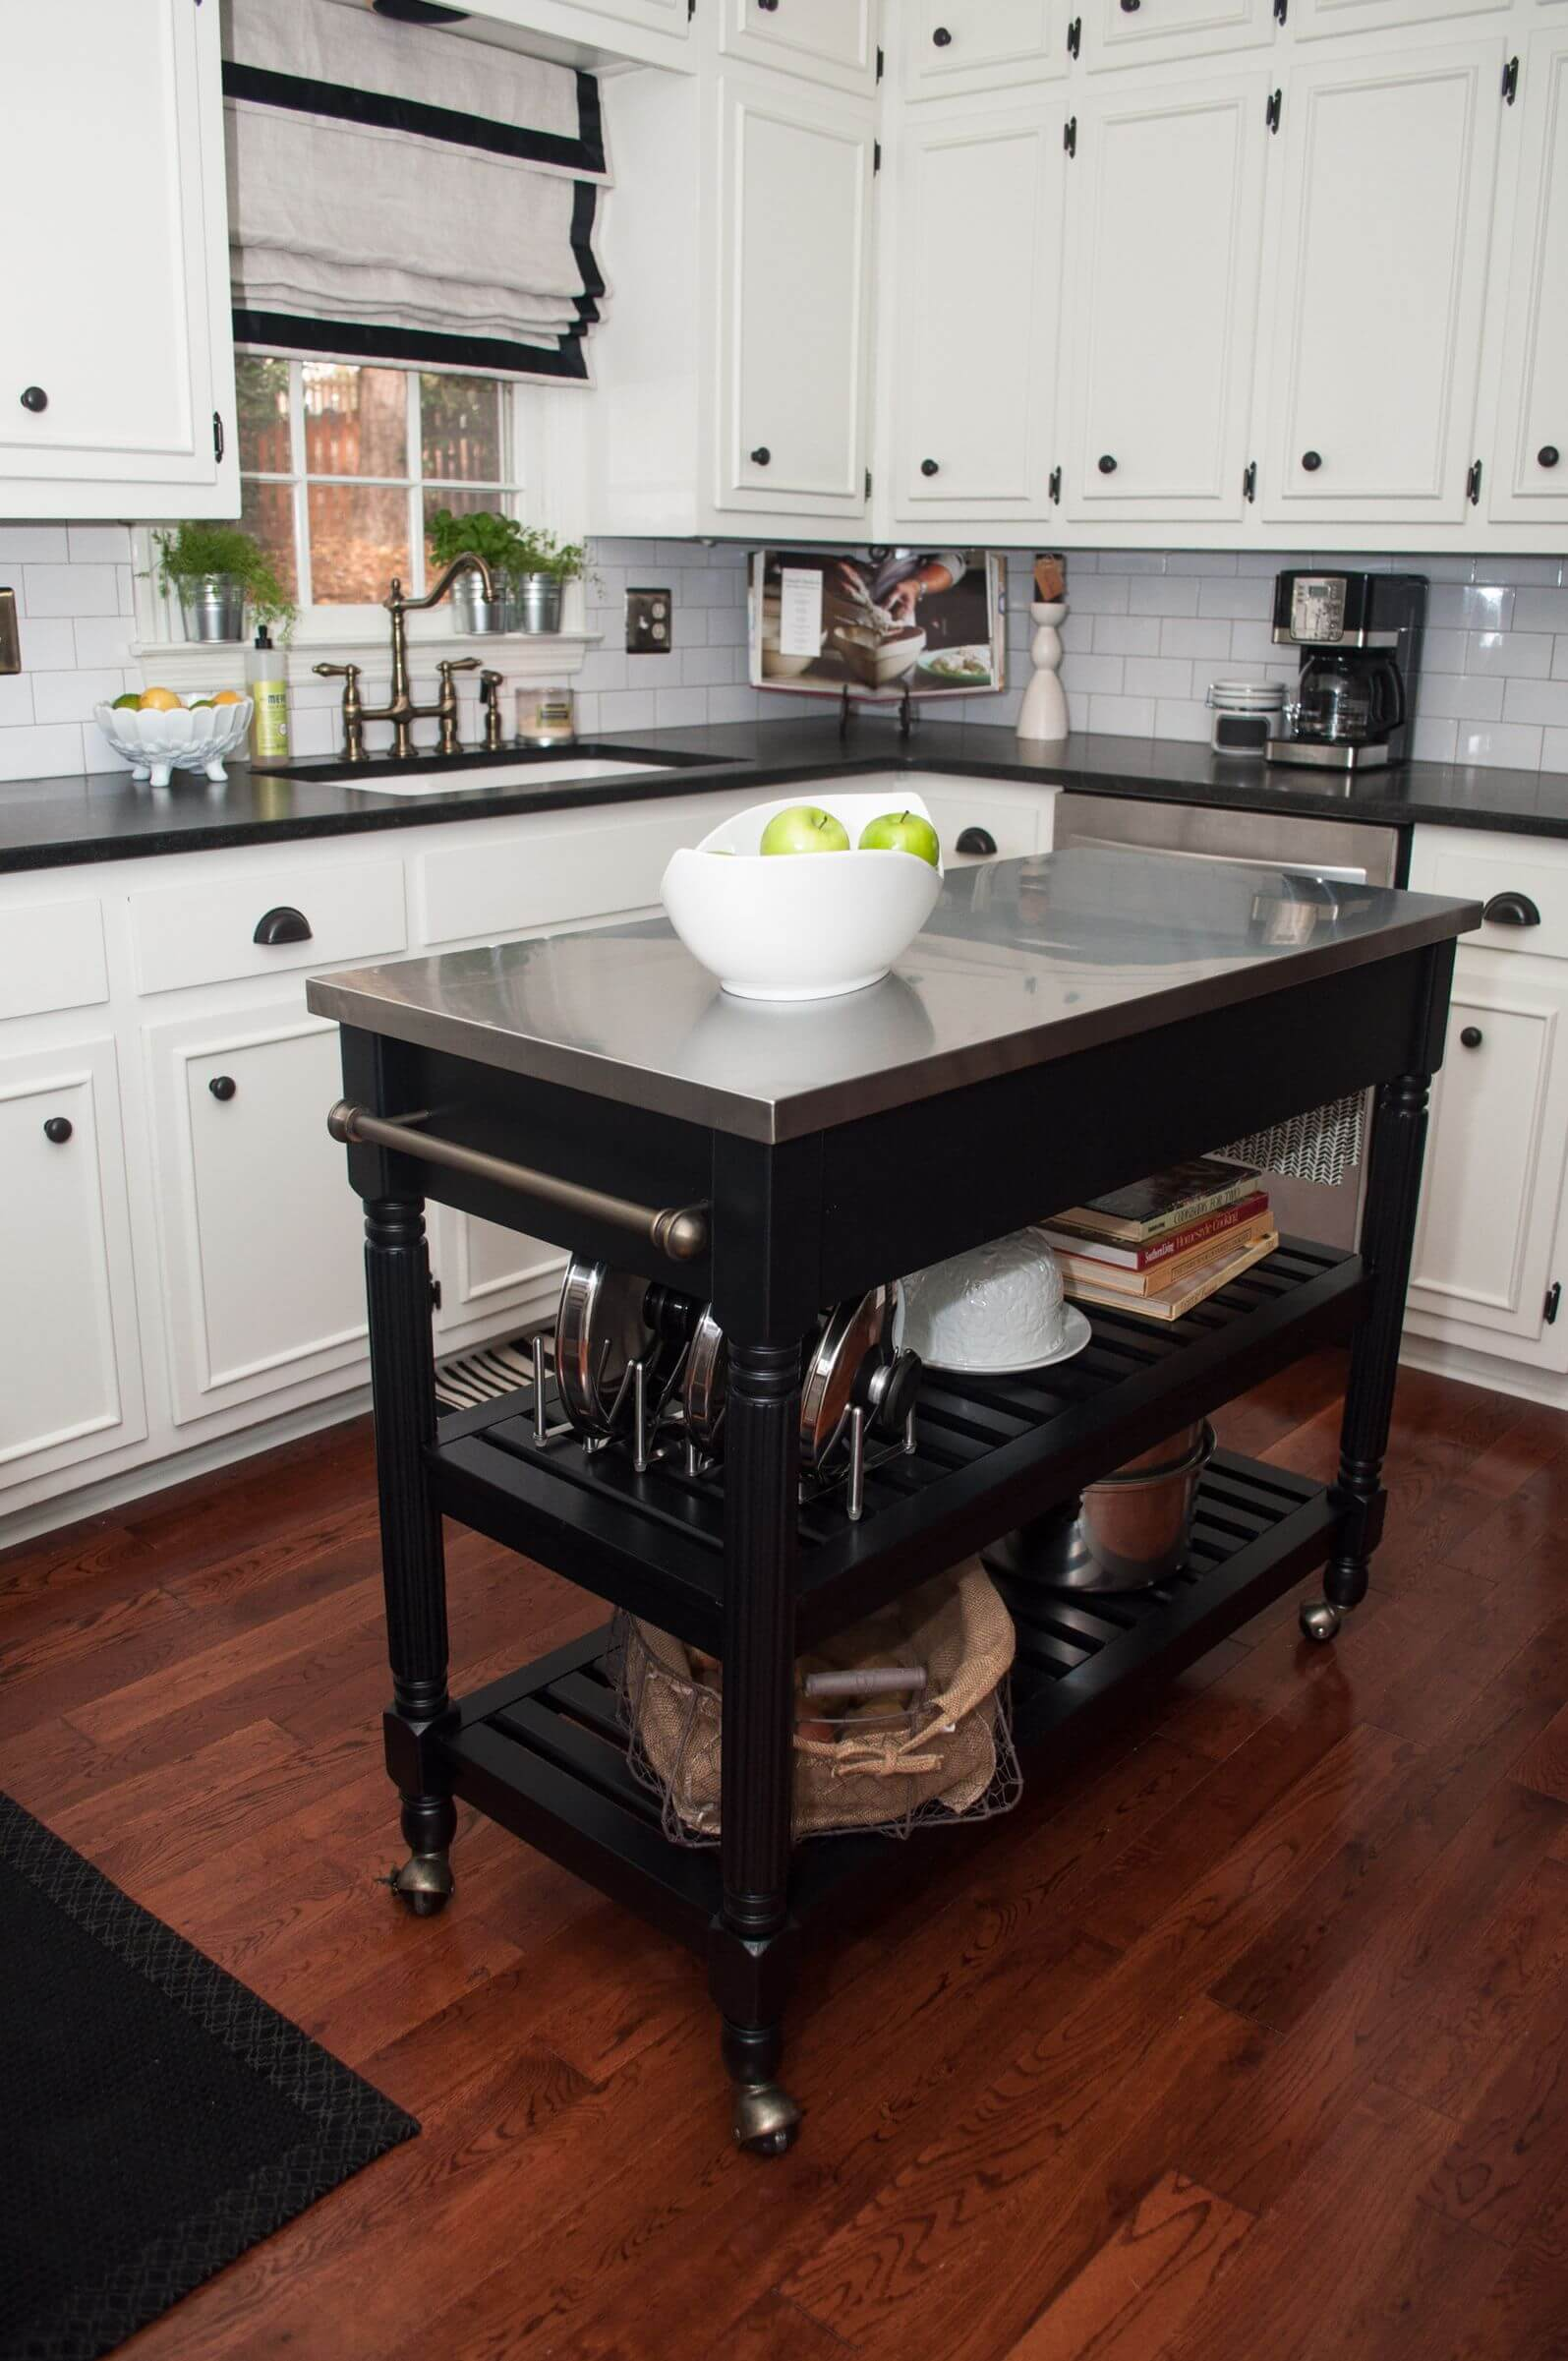 11 Types Of Small Kitchen Islands Carts On Wheels 2021